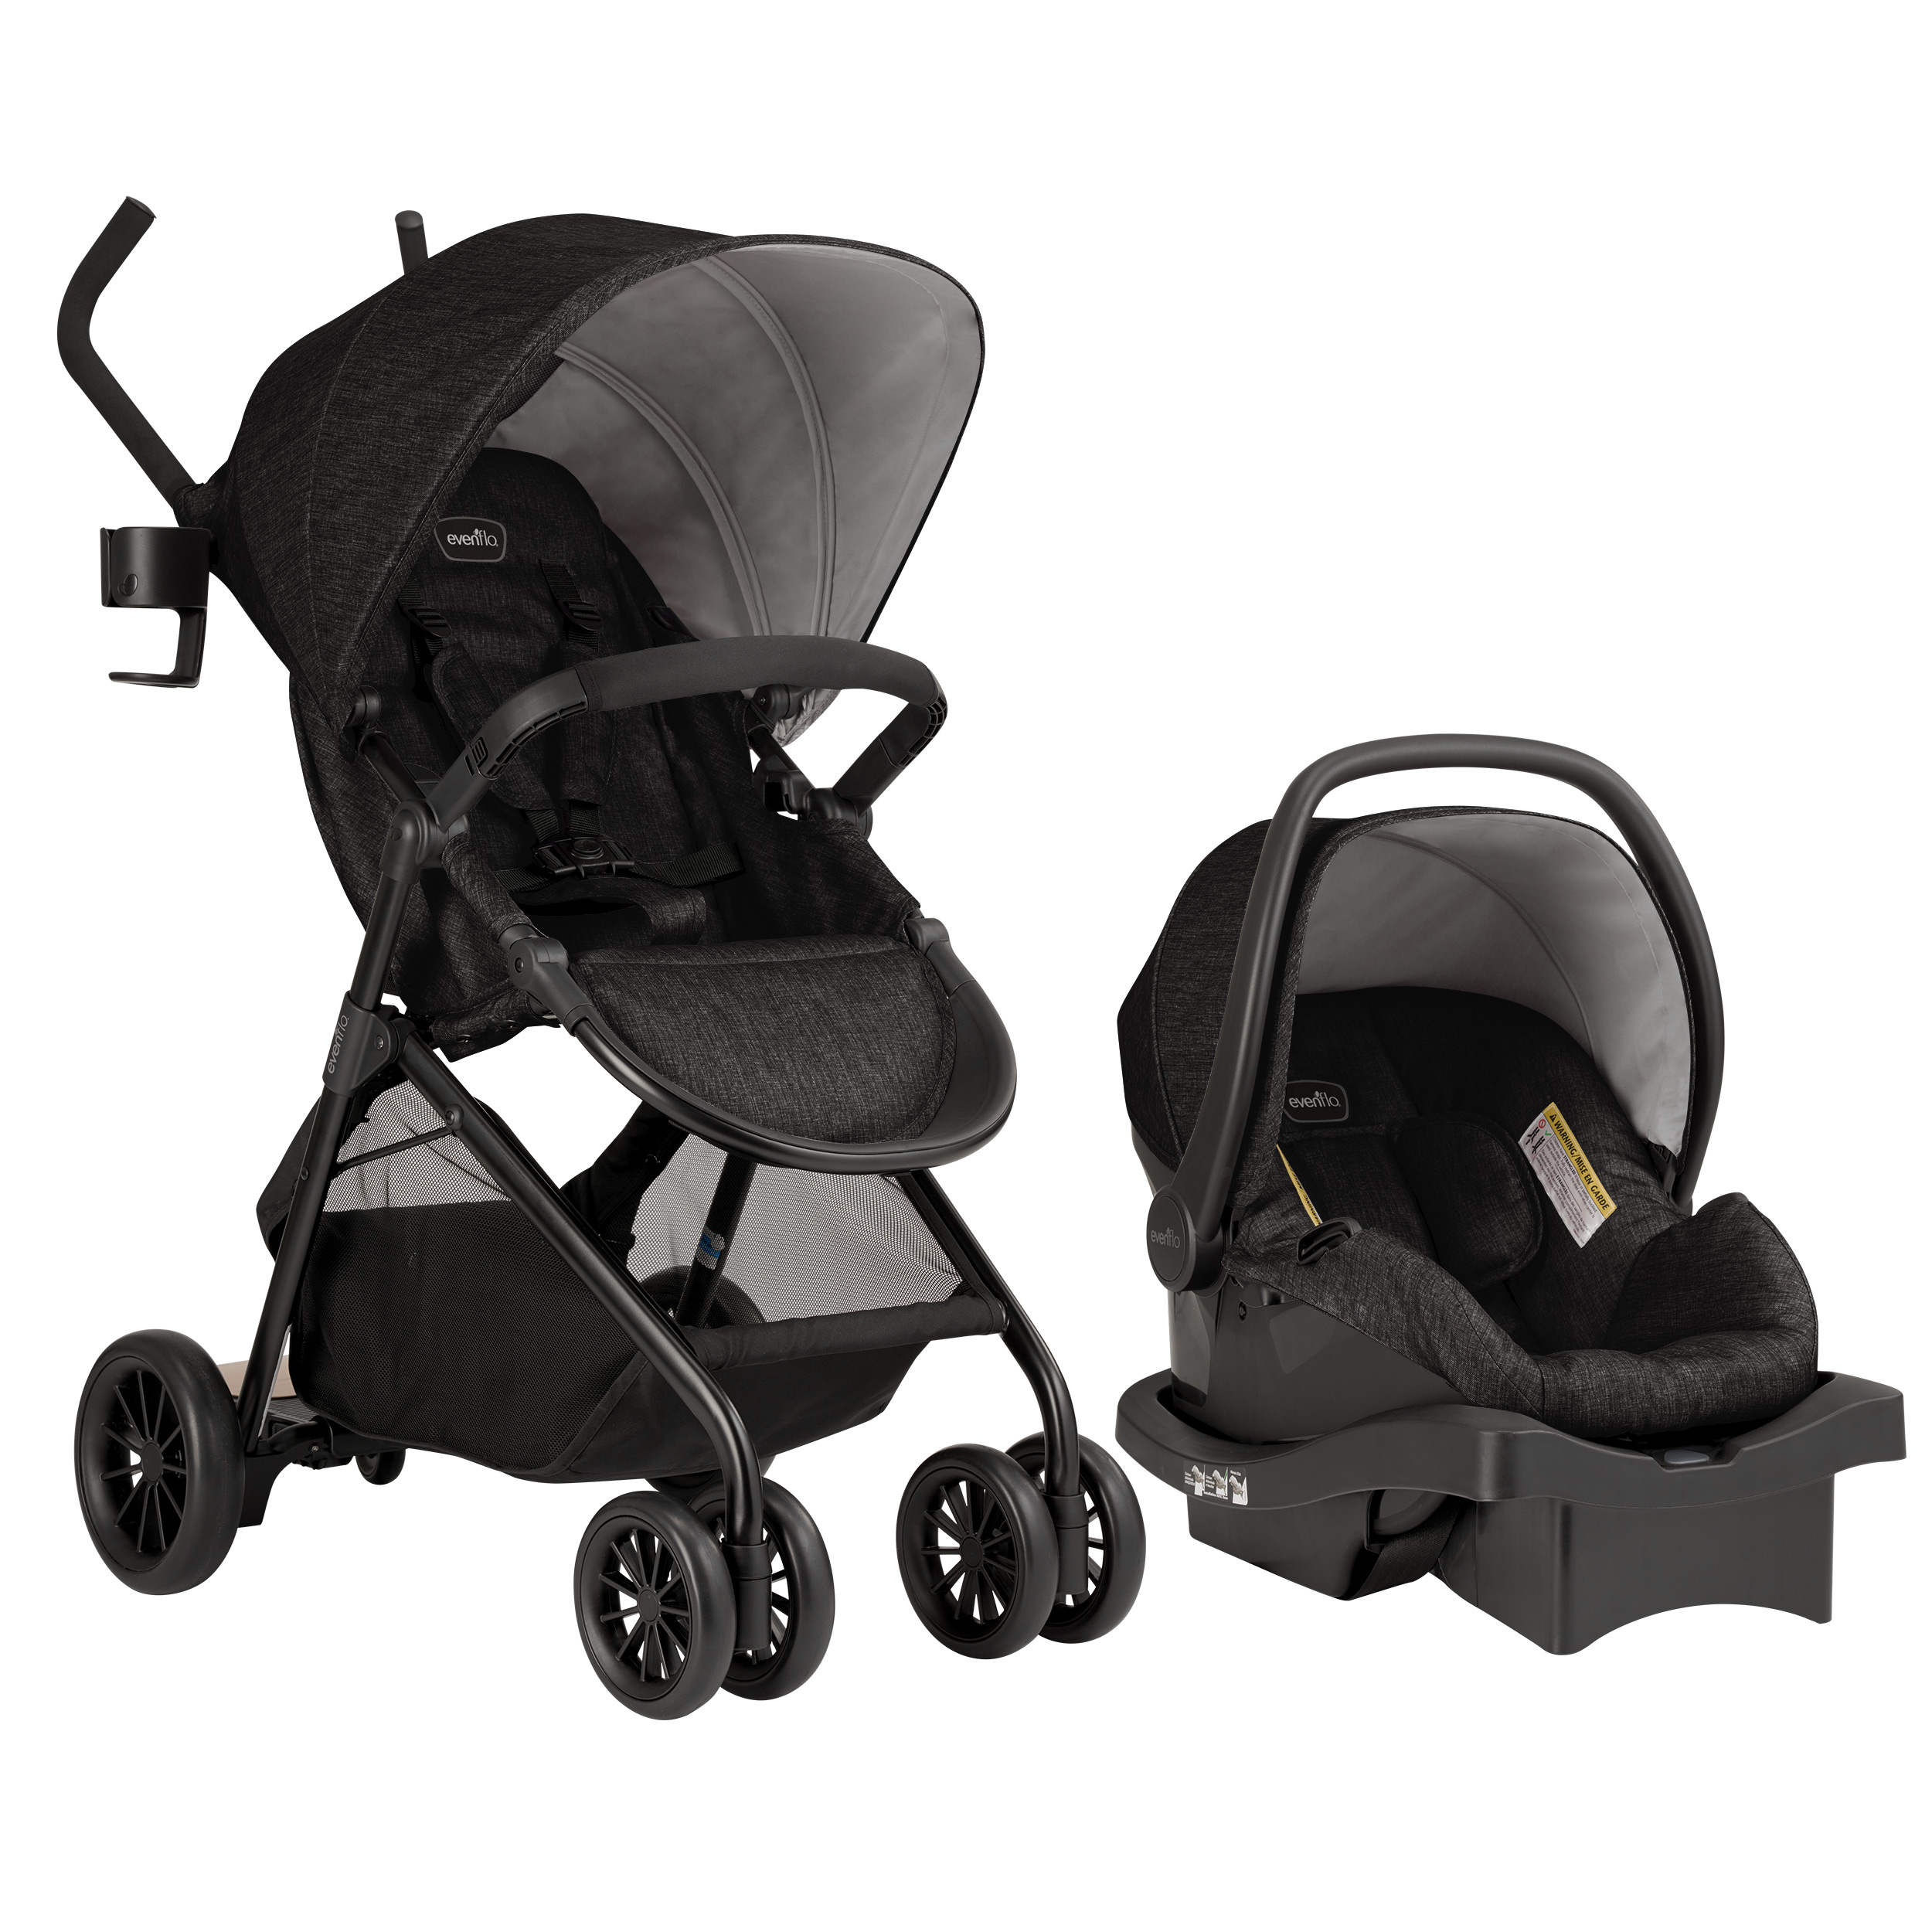 Evenflo Sibby Travel System w/ LiteMax Infant Car Seat, Charcoal